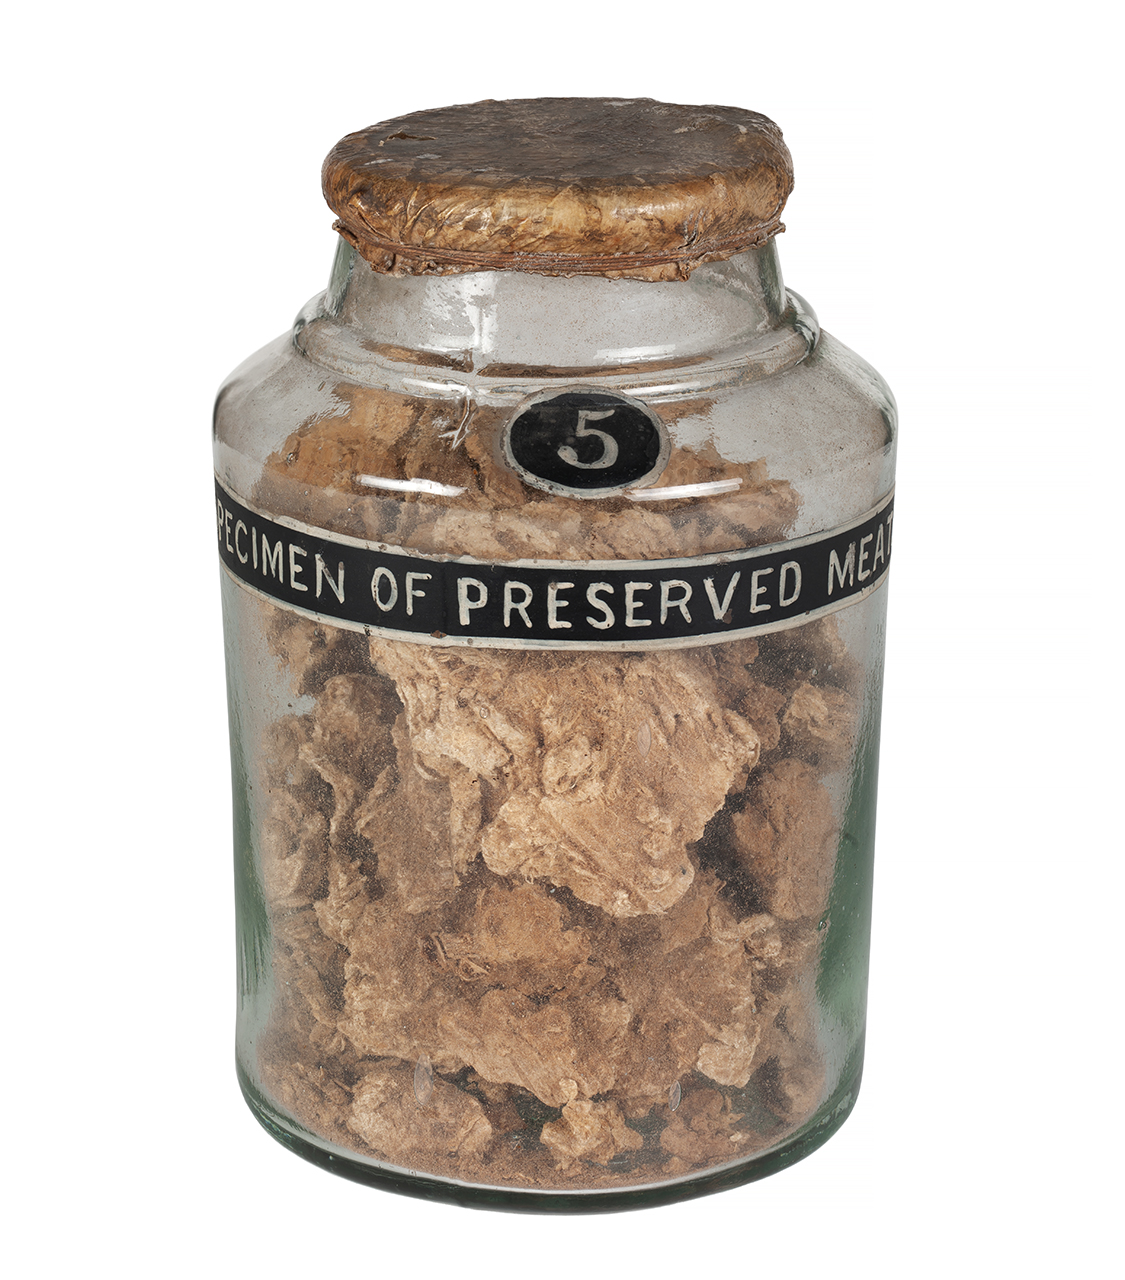 An image showing 'AAA2328; Specimen of preserved meat in a jar No:5'